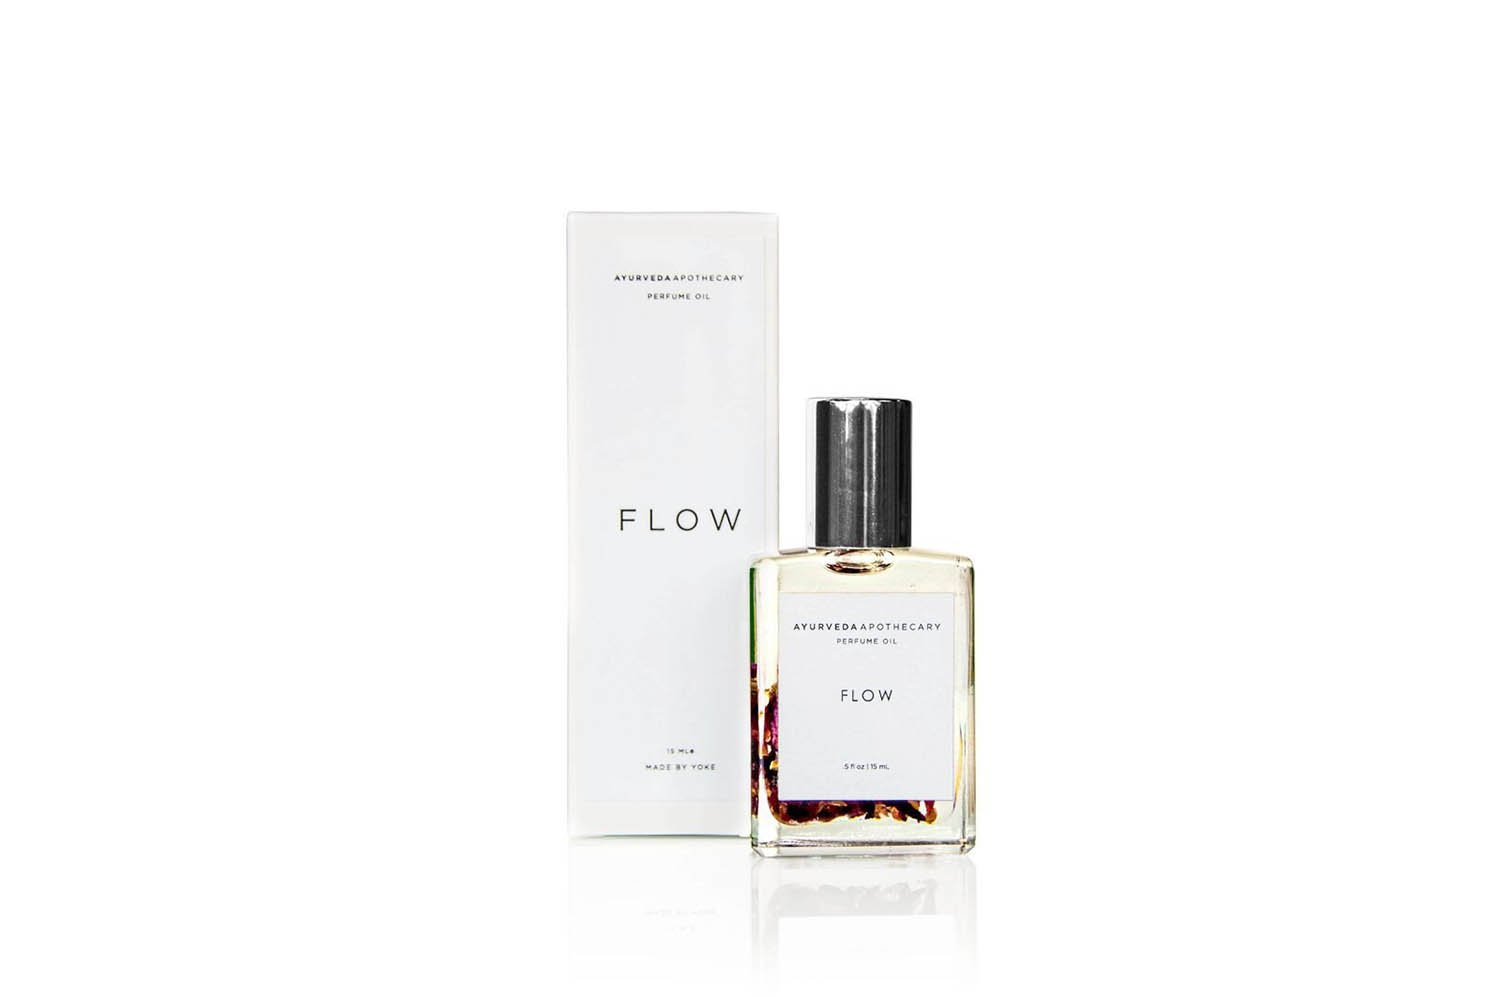 Inspired by living close to the land, hand-blended products from Ayurveda Apothecary like Flow Perfume Oil are formulated seasonally with a commitment to green beauty.<p></p>